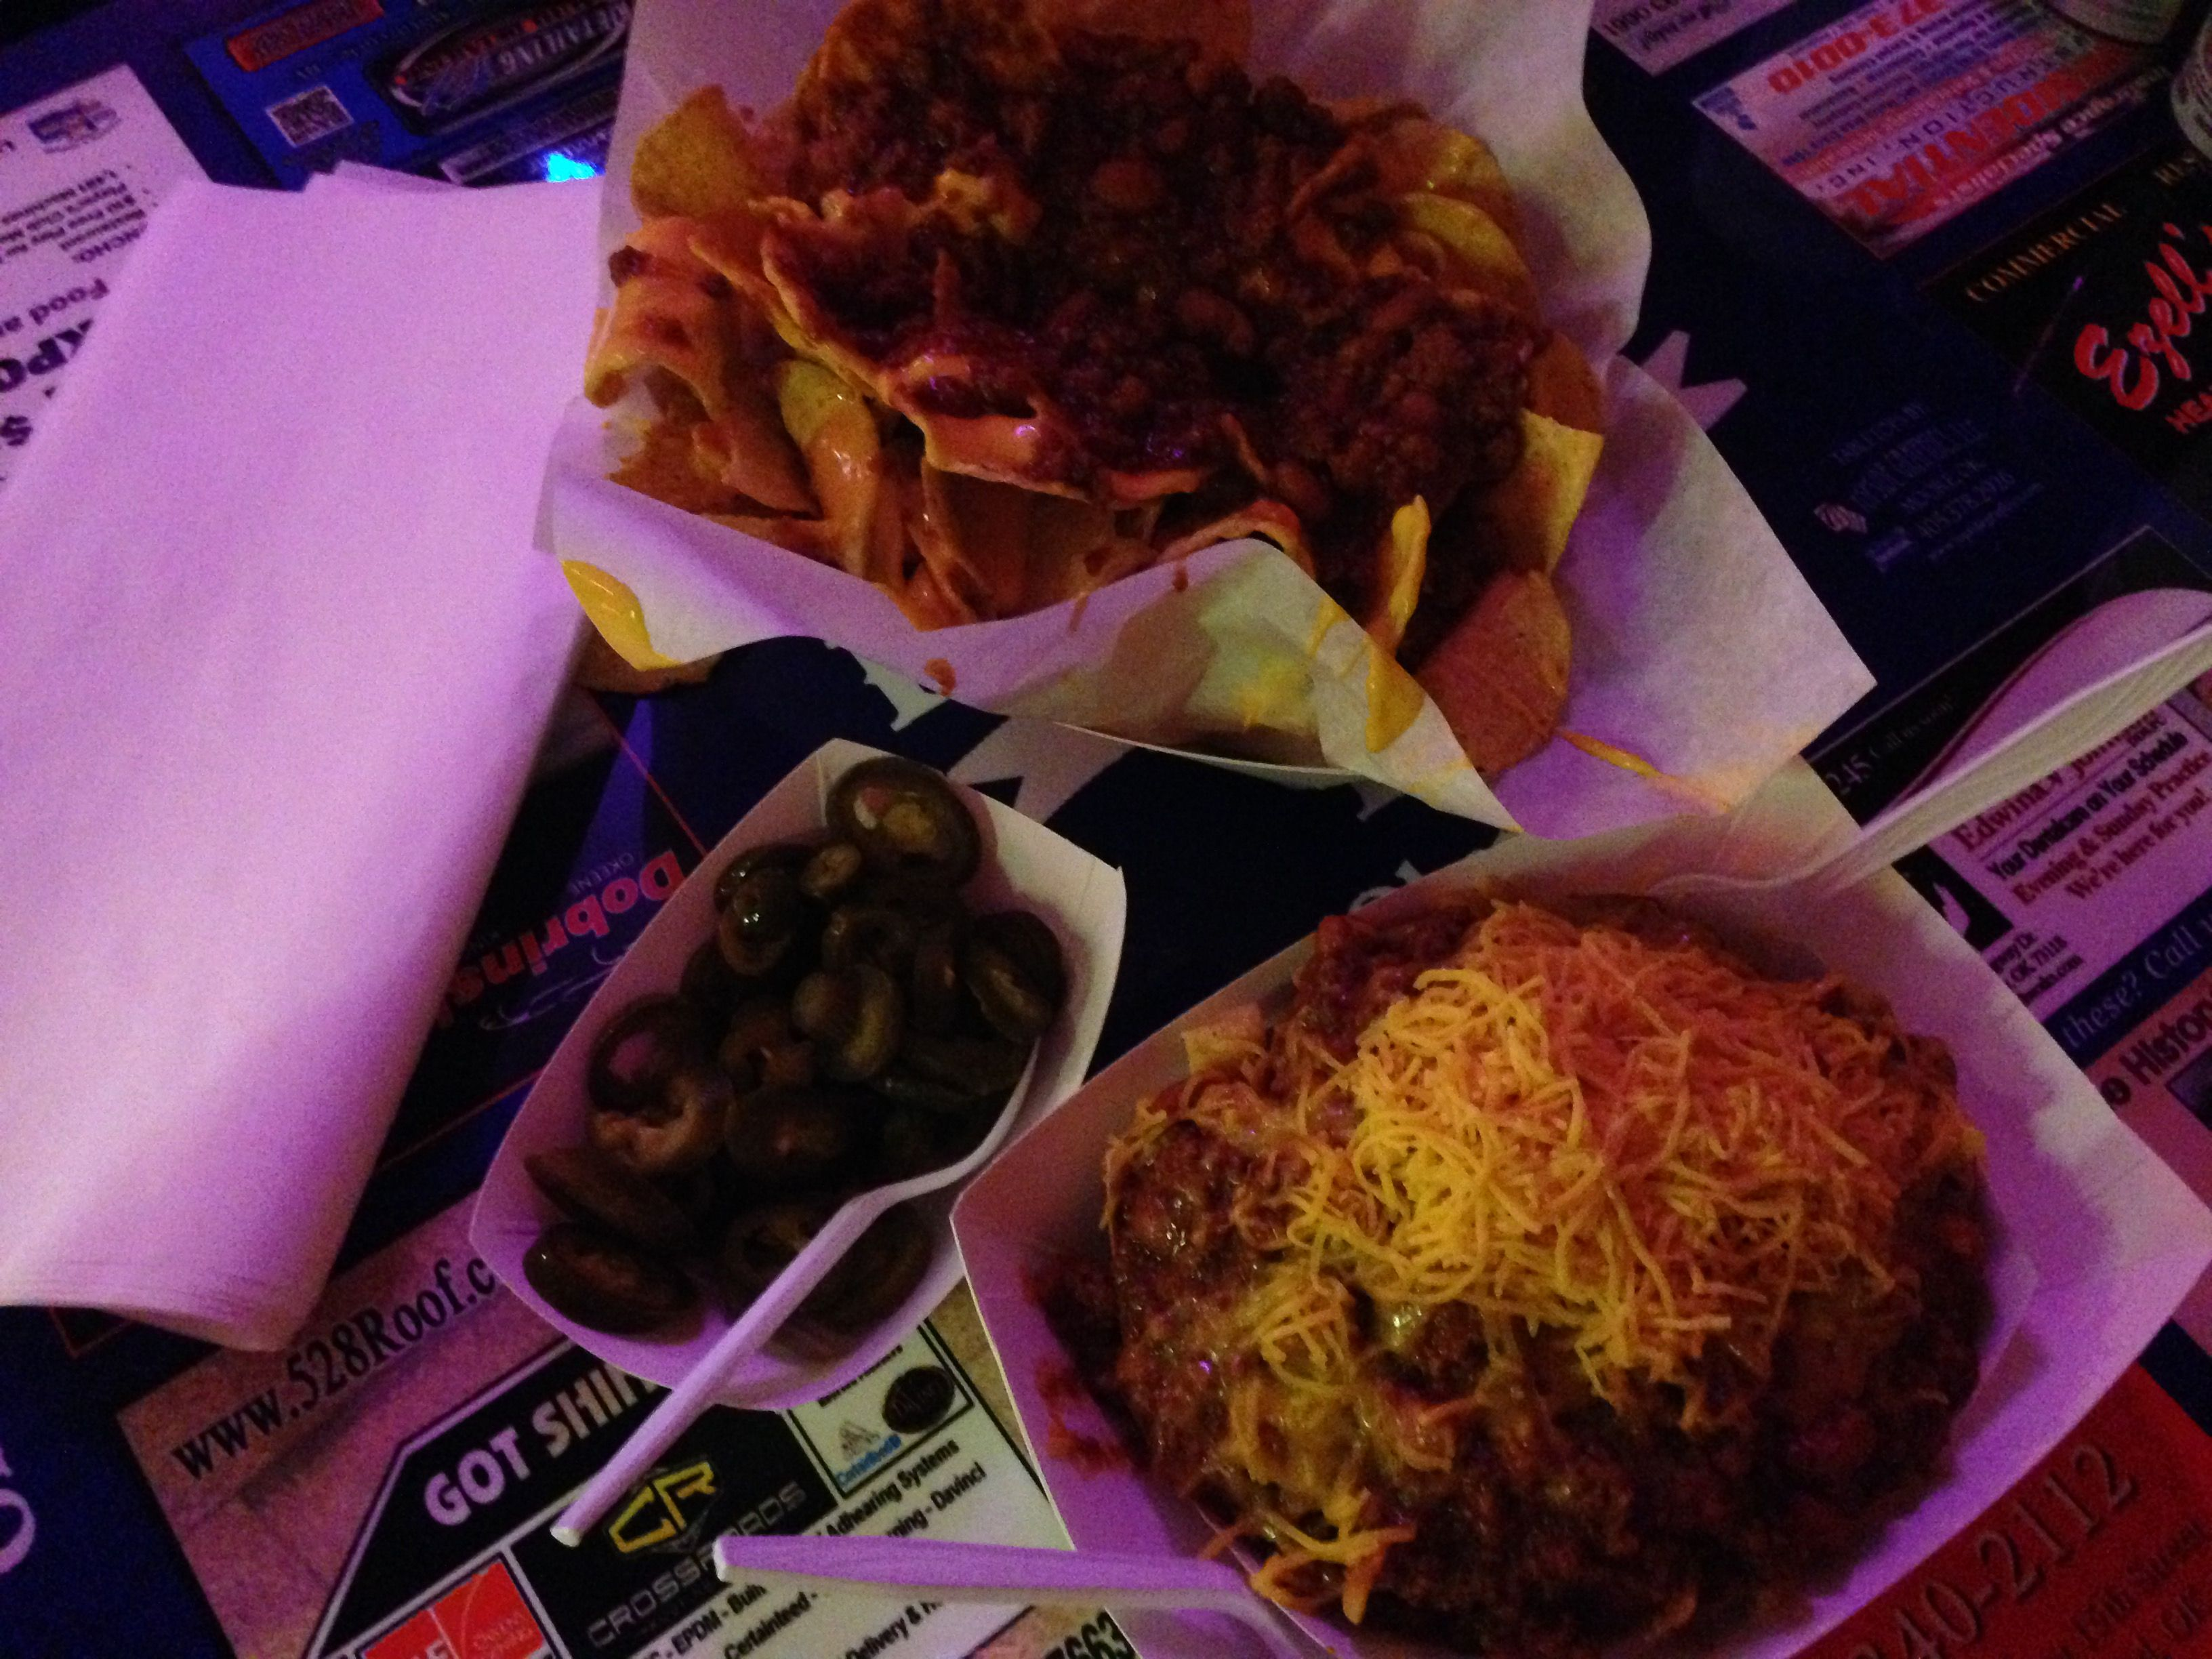 Chili Cheese Nacho's and Frito Pie with a side of jalapeno peppers.